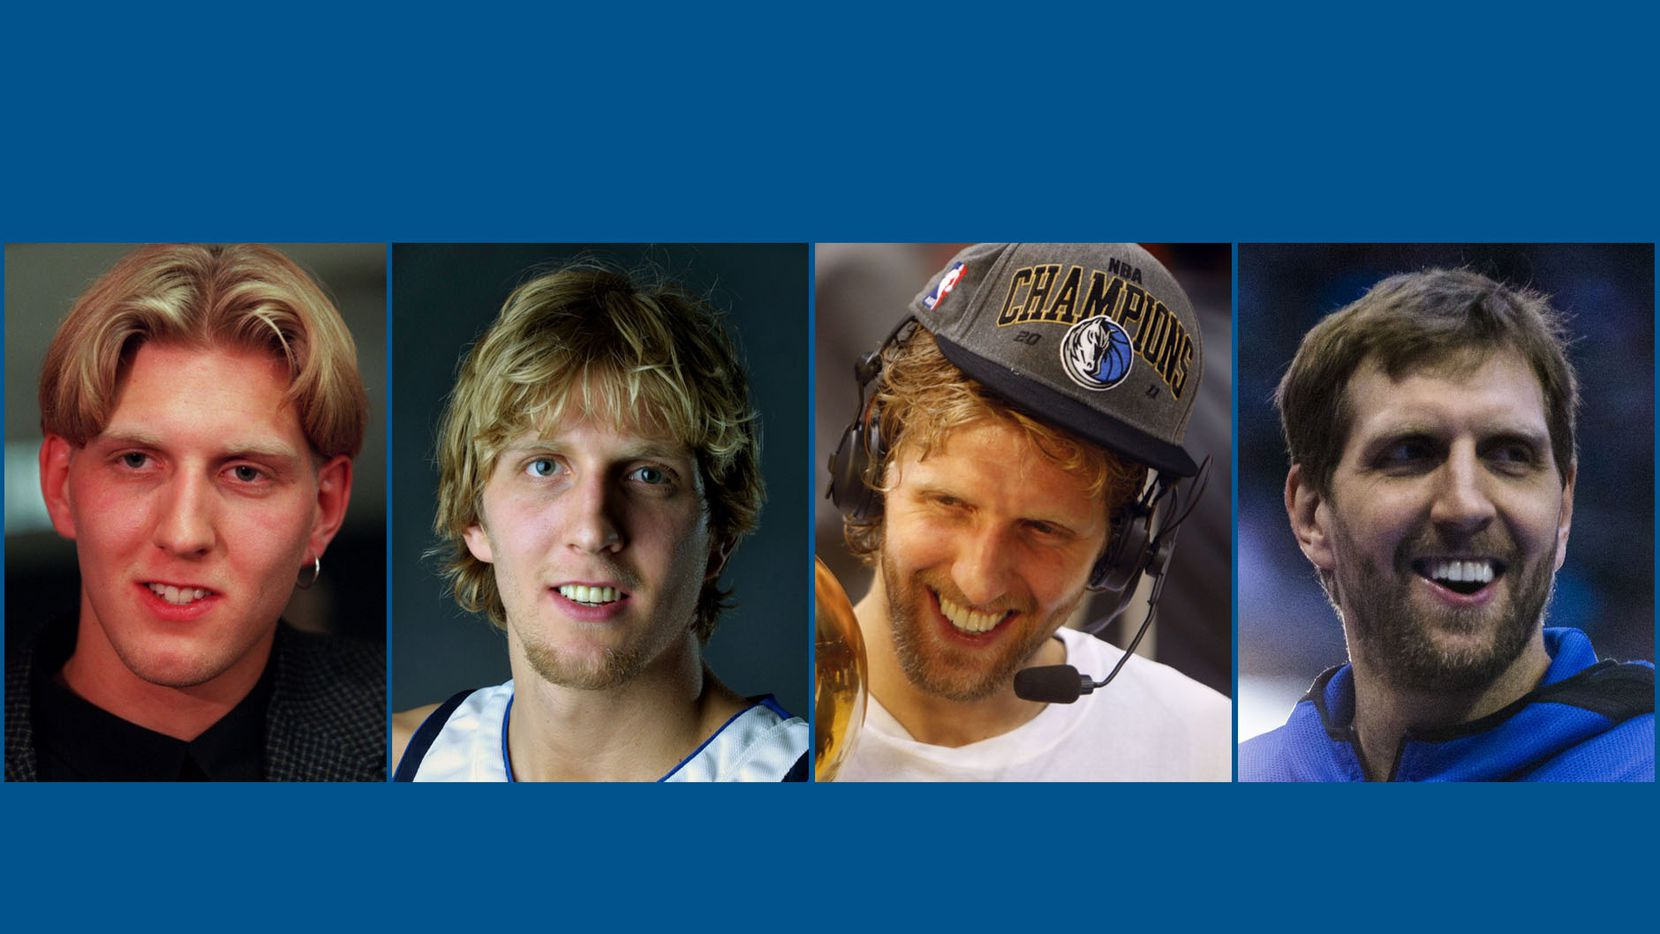 Dirk Nowitzki in 1998 (far left), 2001 (middle left), 2011 (middle right) and 2019 (far right).